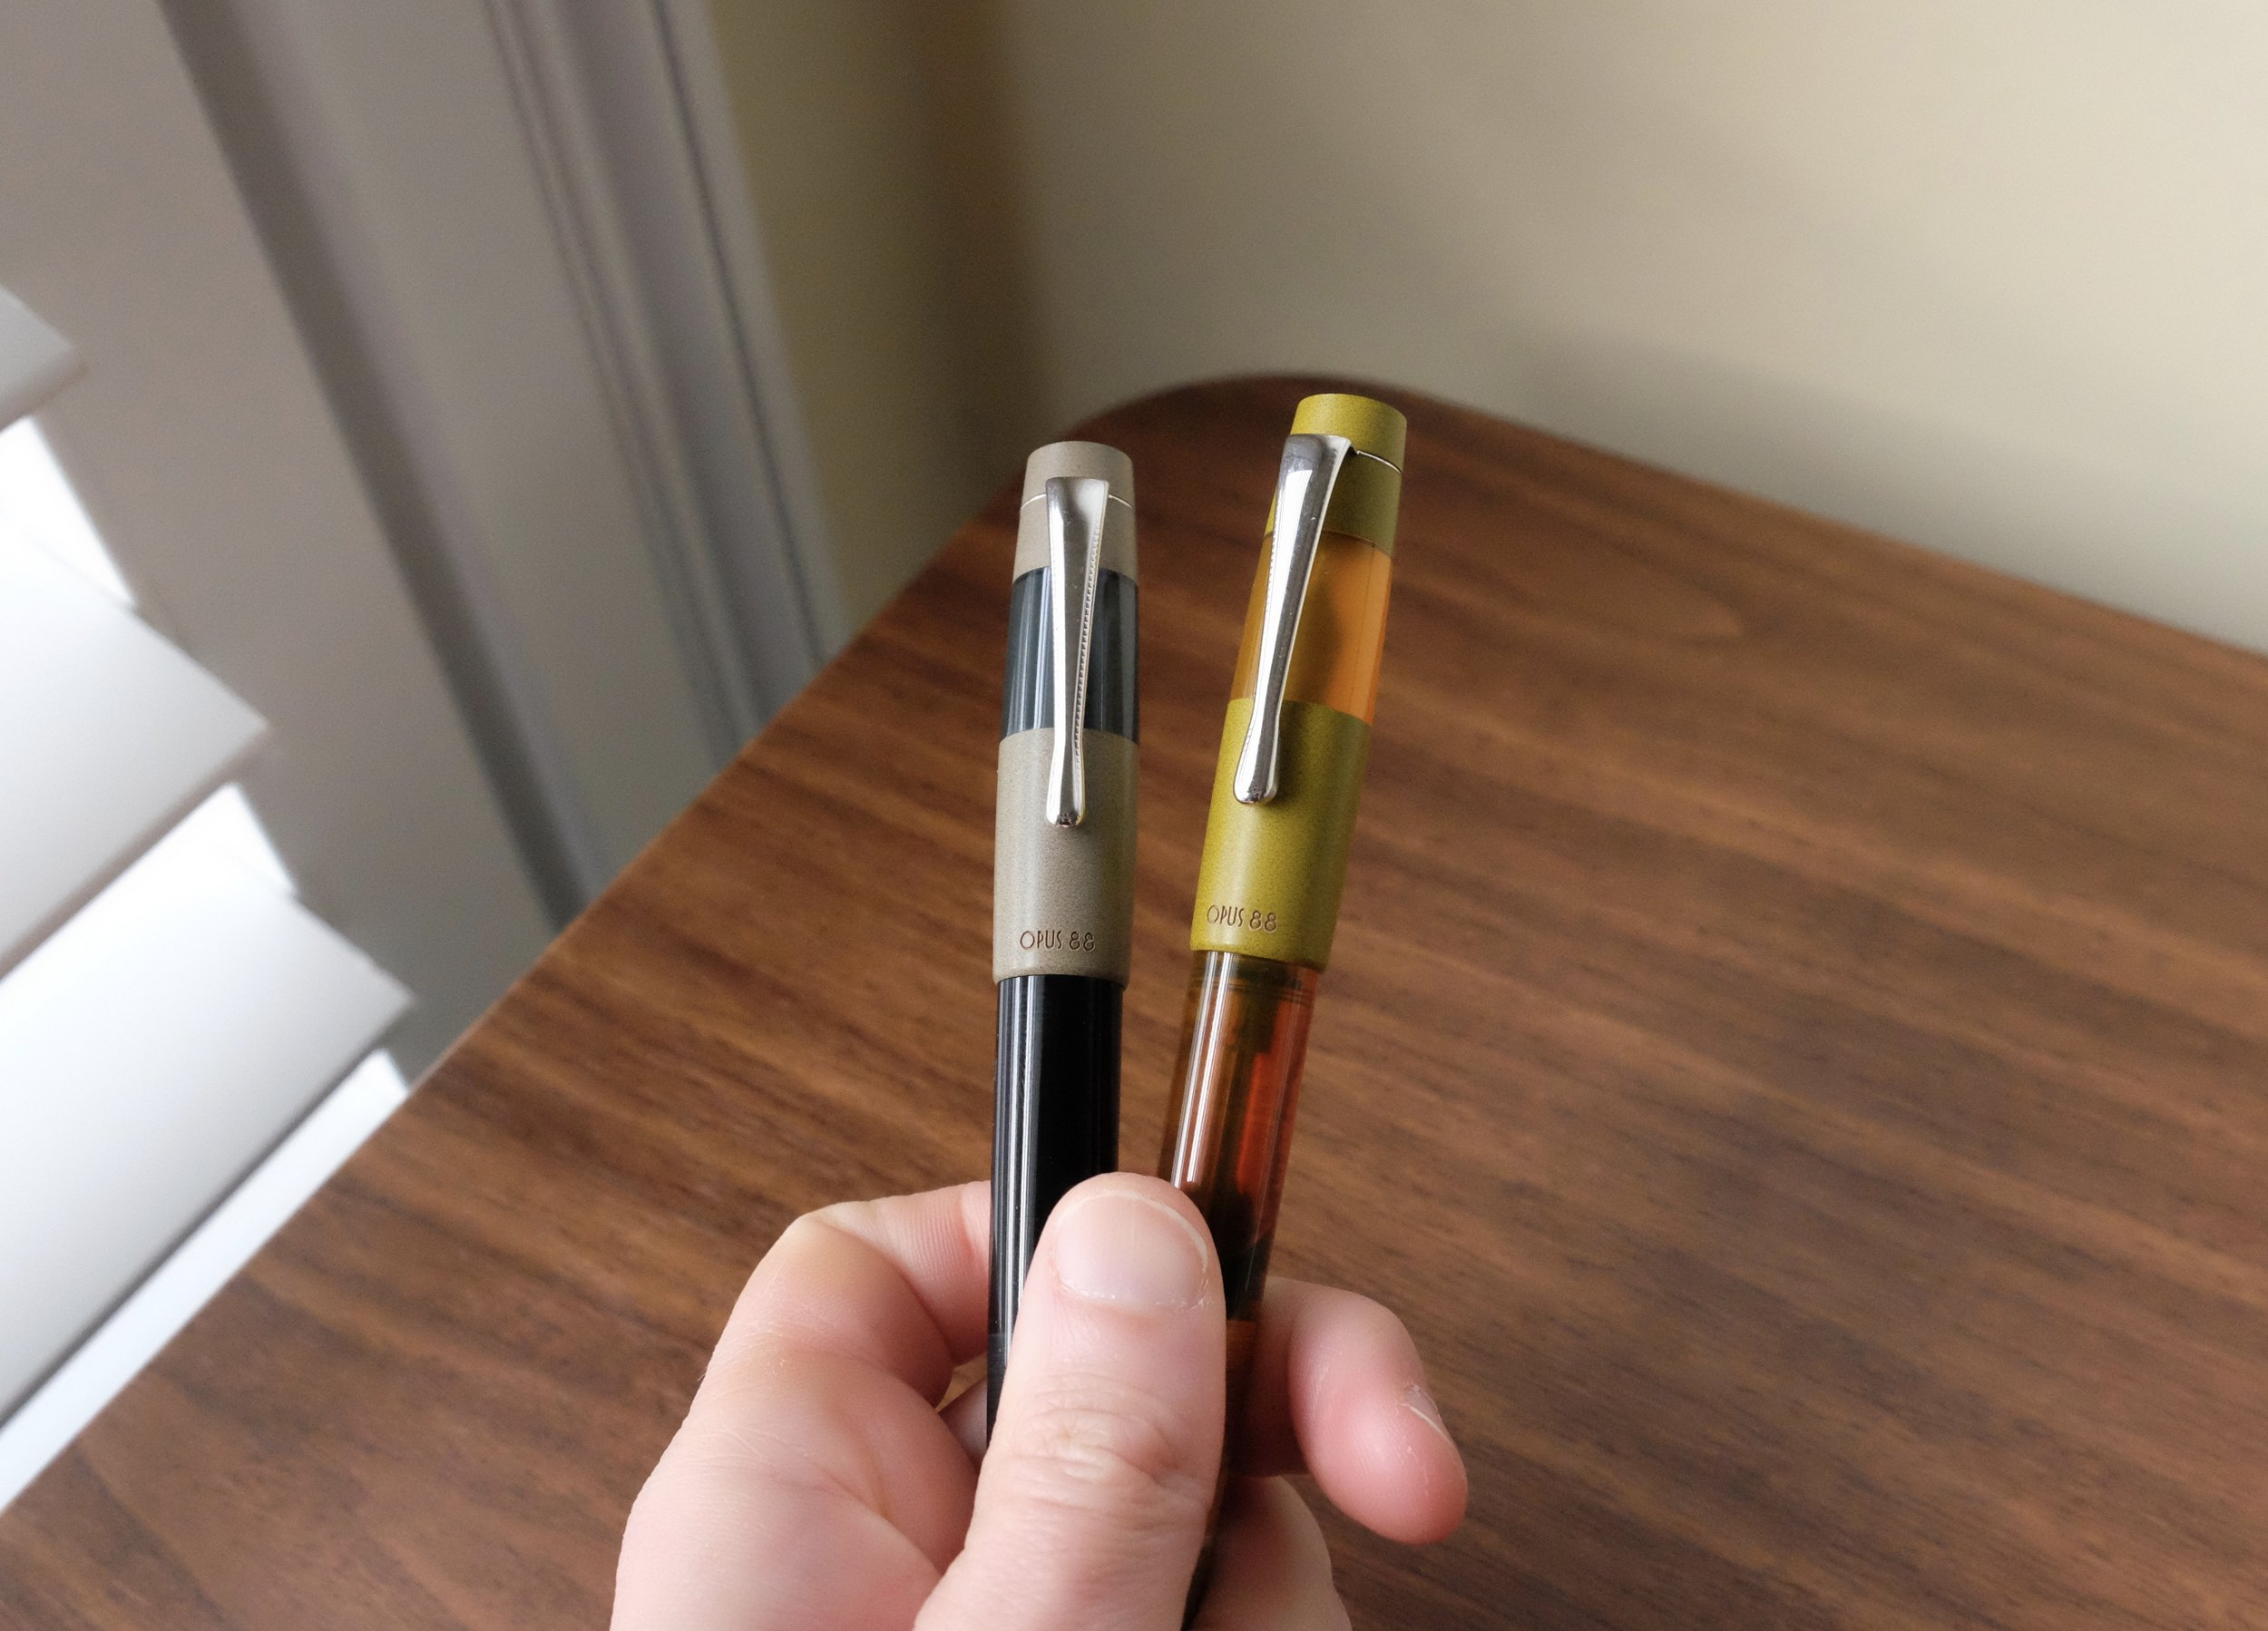 """Both Opus 88 models feature minimal branding, just """"Opus 88"""" on the cap. On the Koloro pens, the branding is engraved. On the larger demonstrator, shown below, it's screen printed, which doesn't look as nice and likely won't be as durable."""